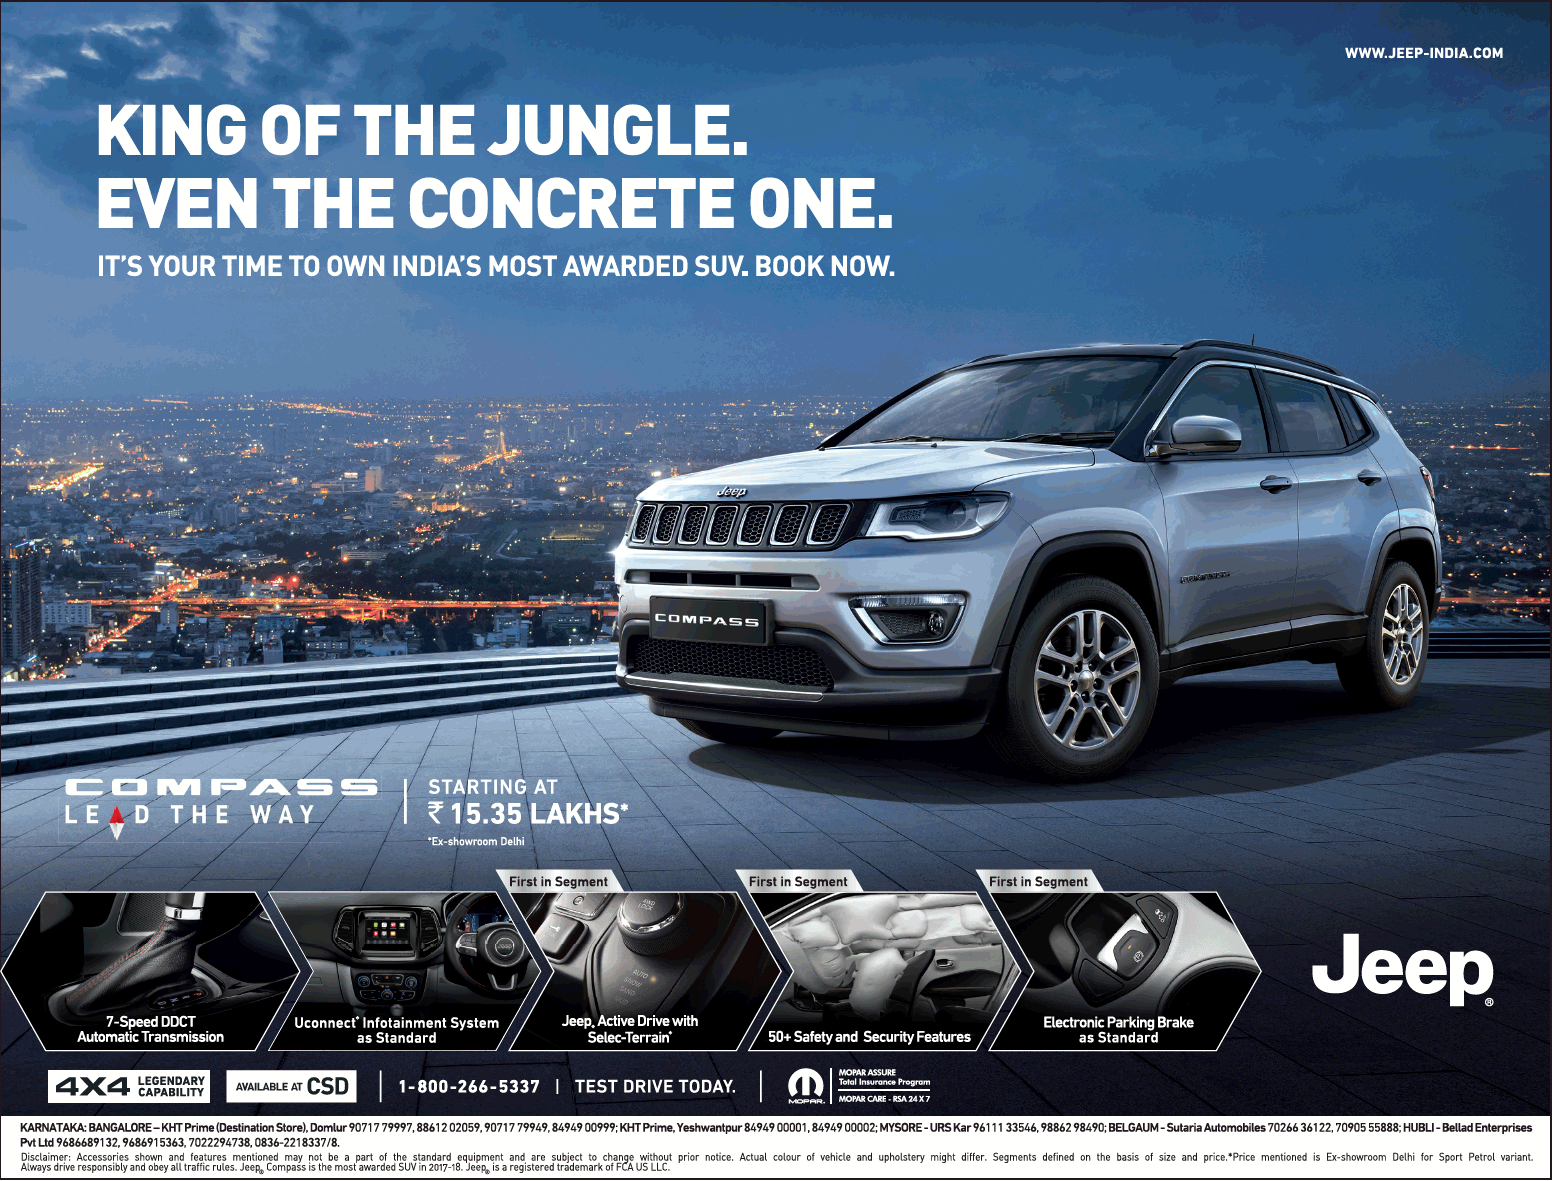 Compass Jeep Car King Of The Jungle Even The Concrete One Ad Times